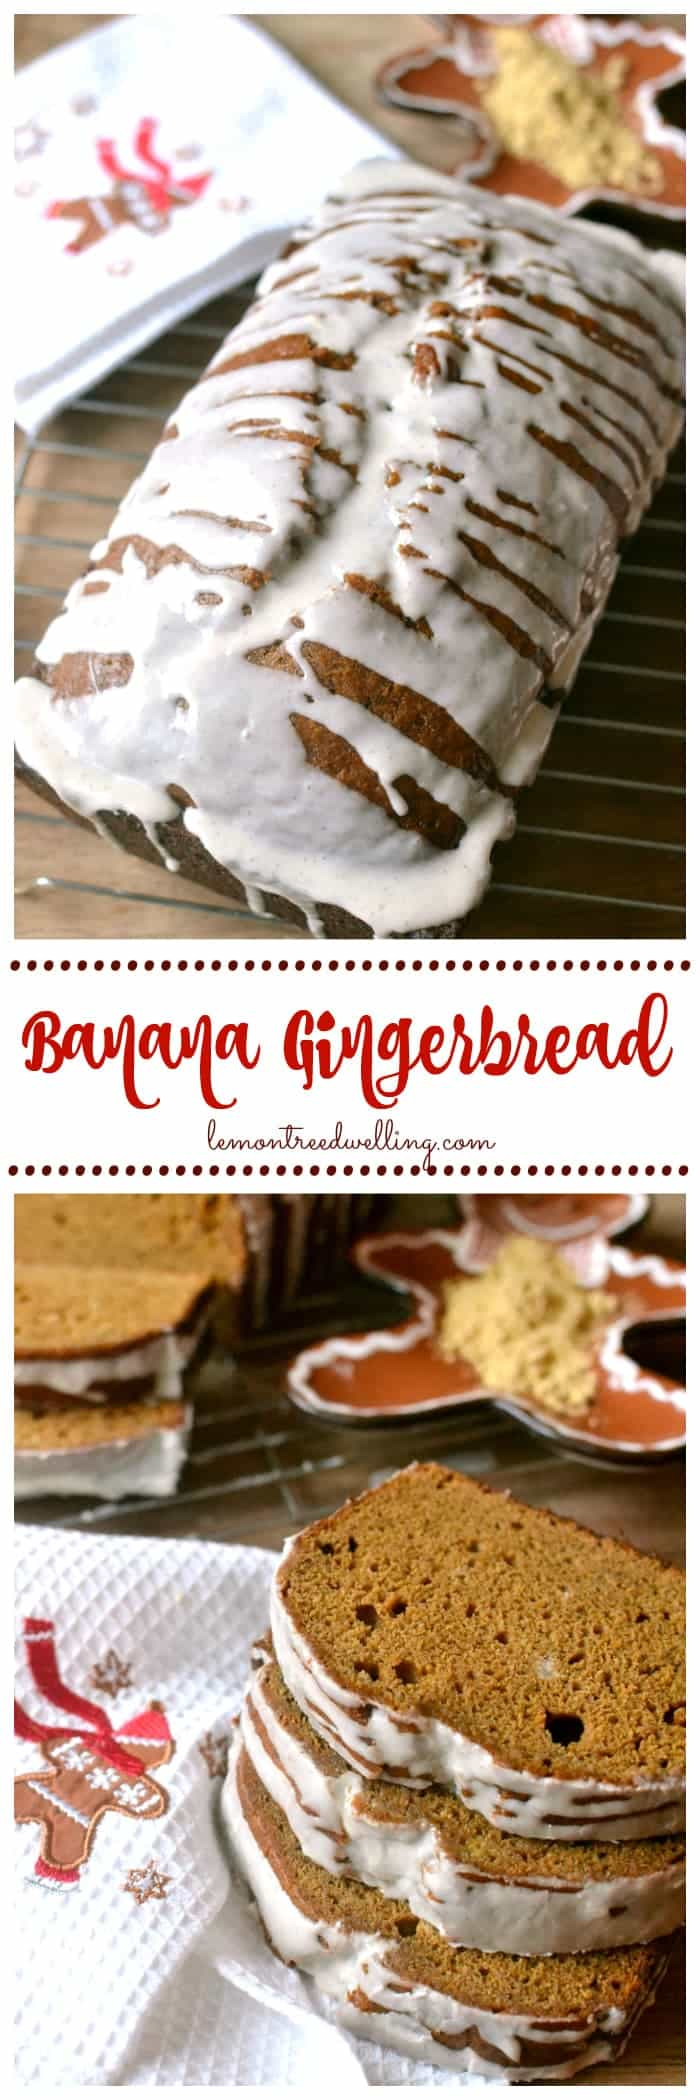 Glazed Banana Gingerbread is a delightful marriage of two great flavors. This gingerbread meets banana bread loaf is a match made in cinnamon drizzled heaven! A perfect holiday treat!